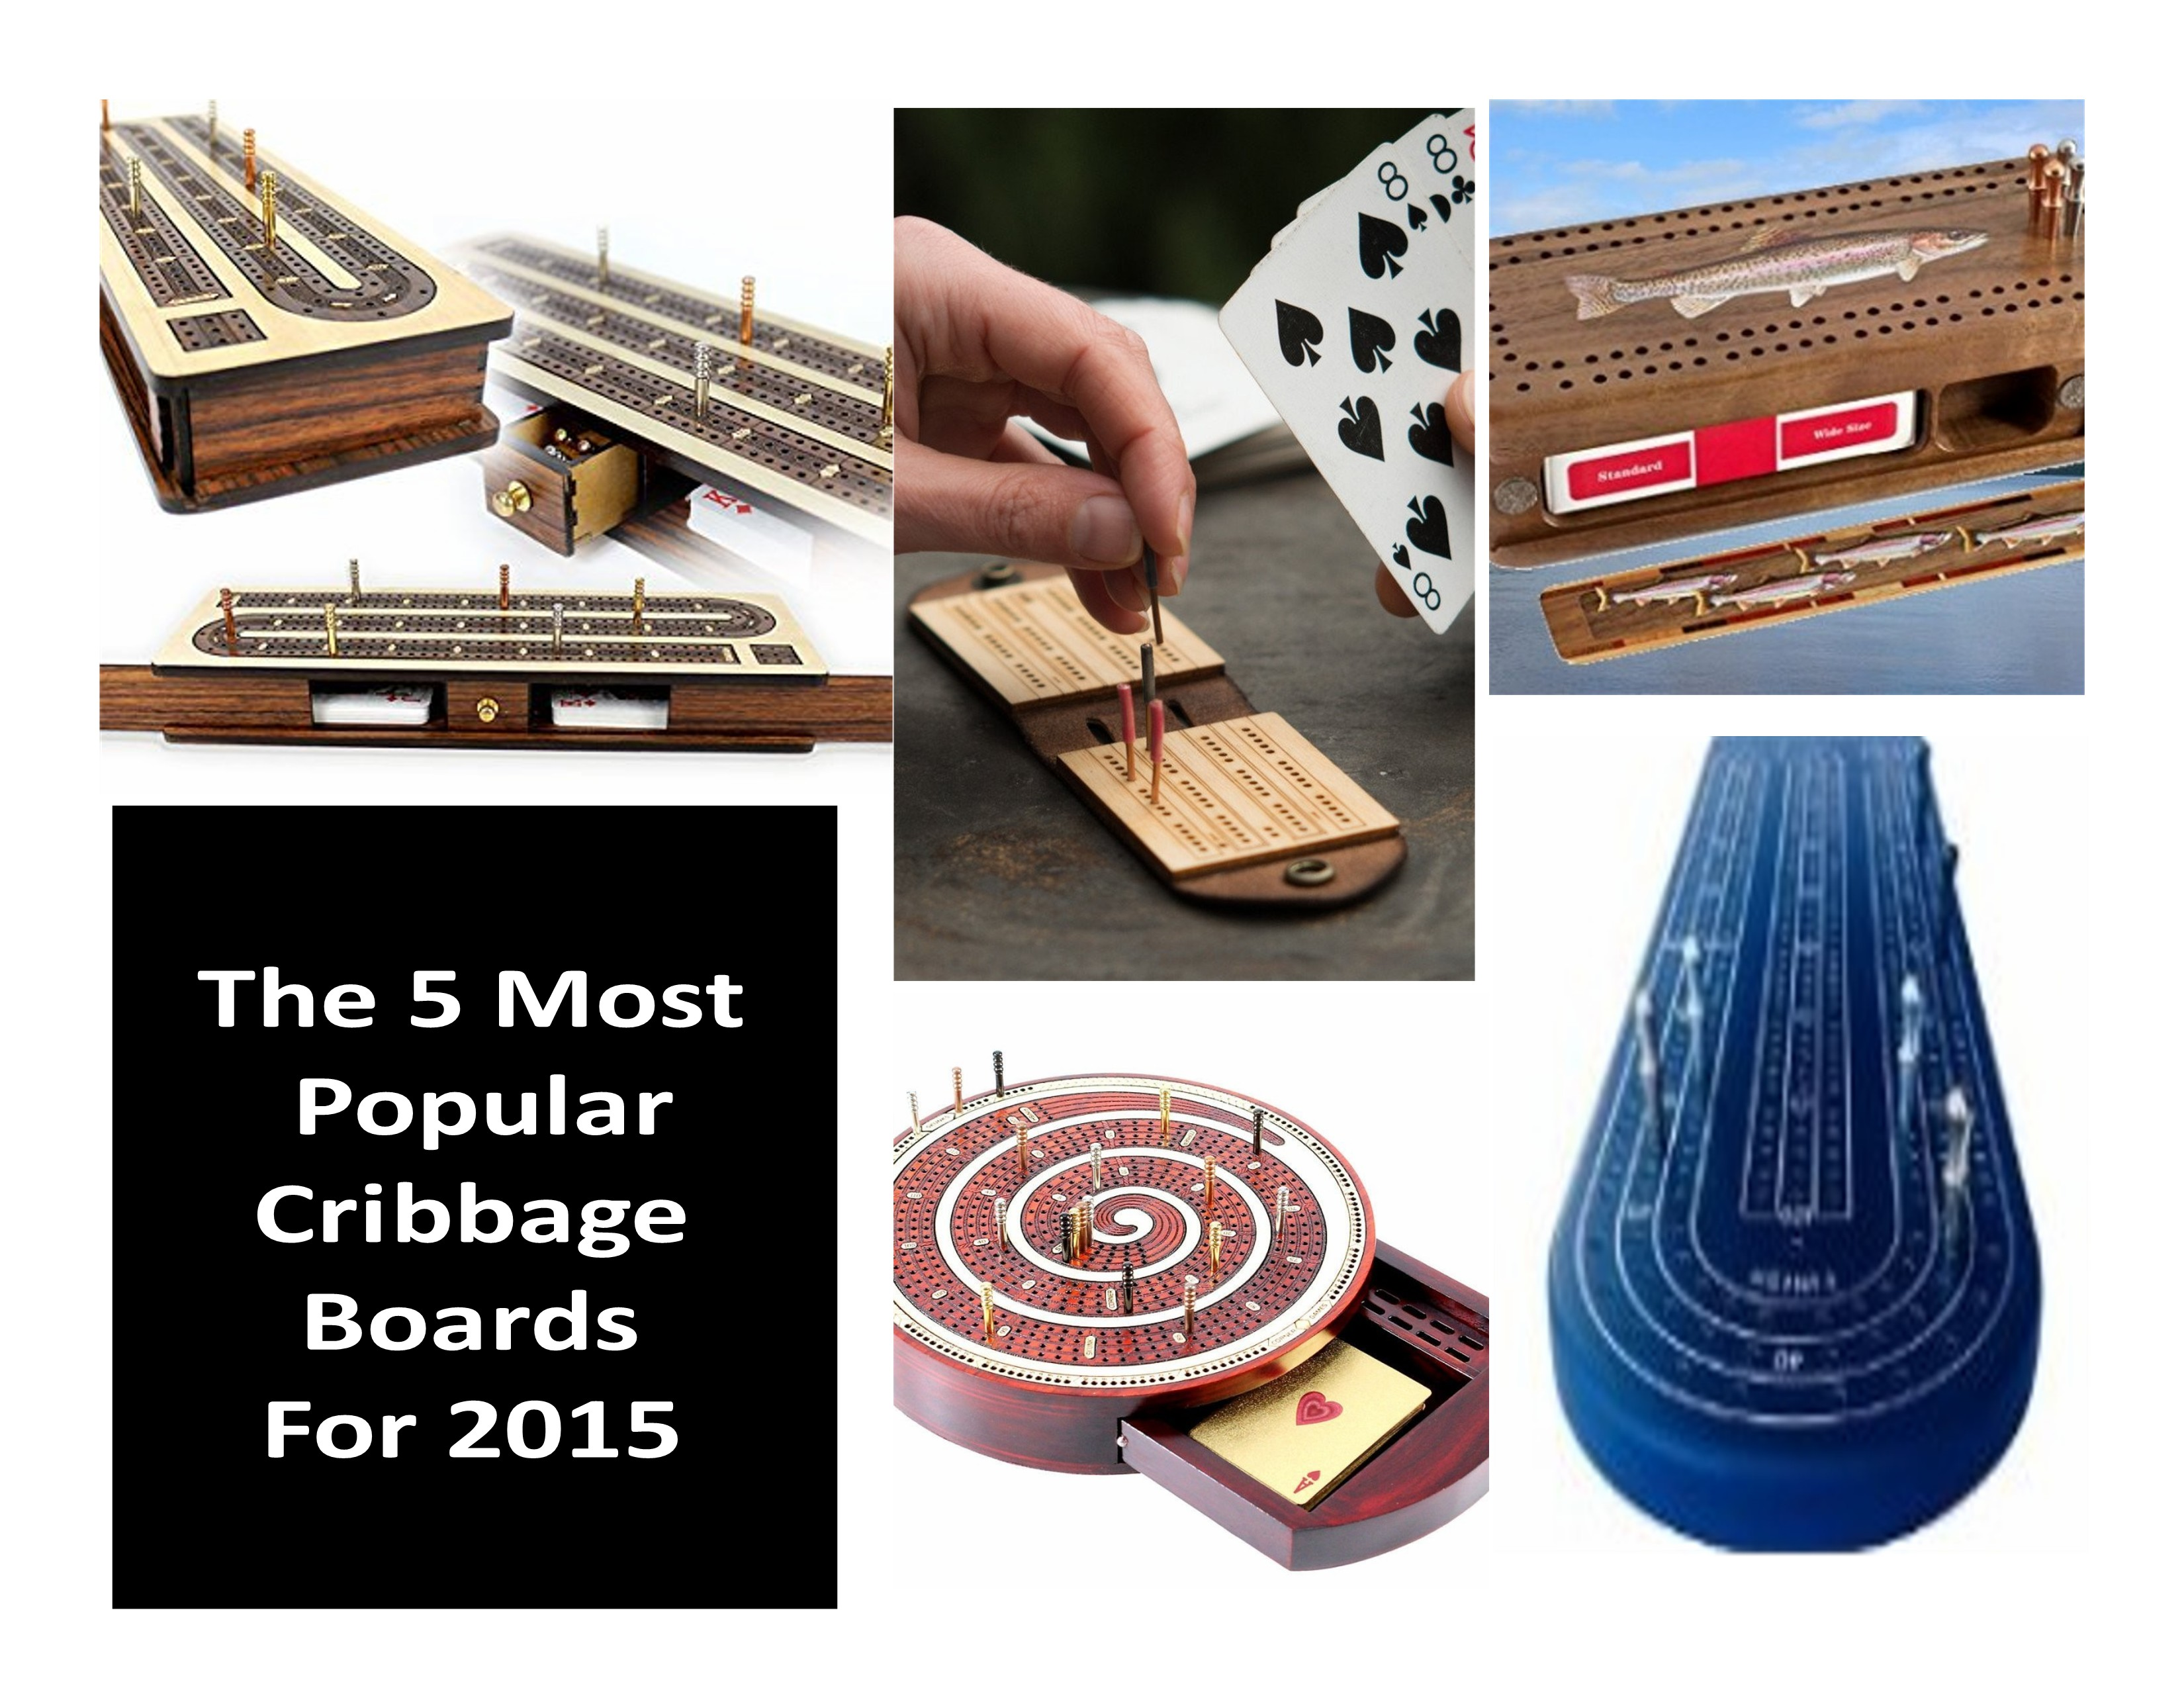 Crib boards for sale uk - The 5 Most Popular Cribbage Boards Of 2015